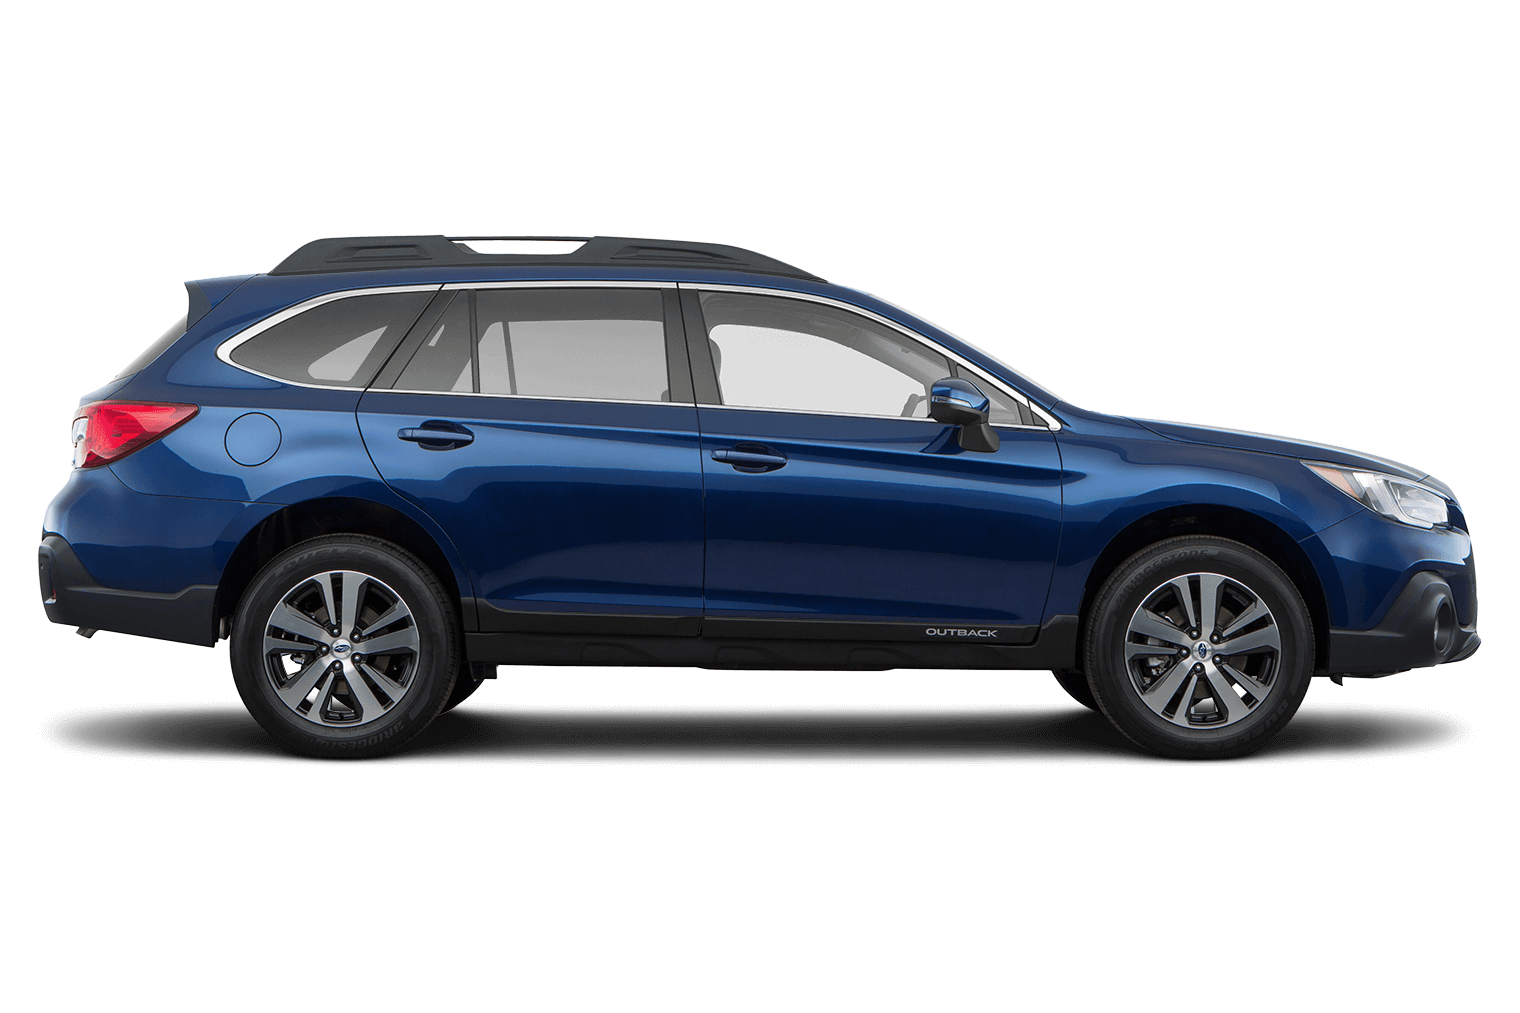 meet the 2018 subaru outback awd suv klamath falls subaru. Black Bedroom Furniture Sets. Home Design Ideas